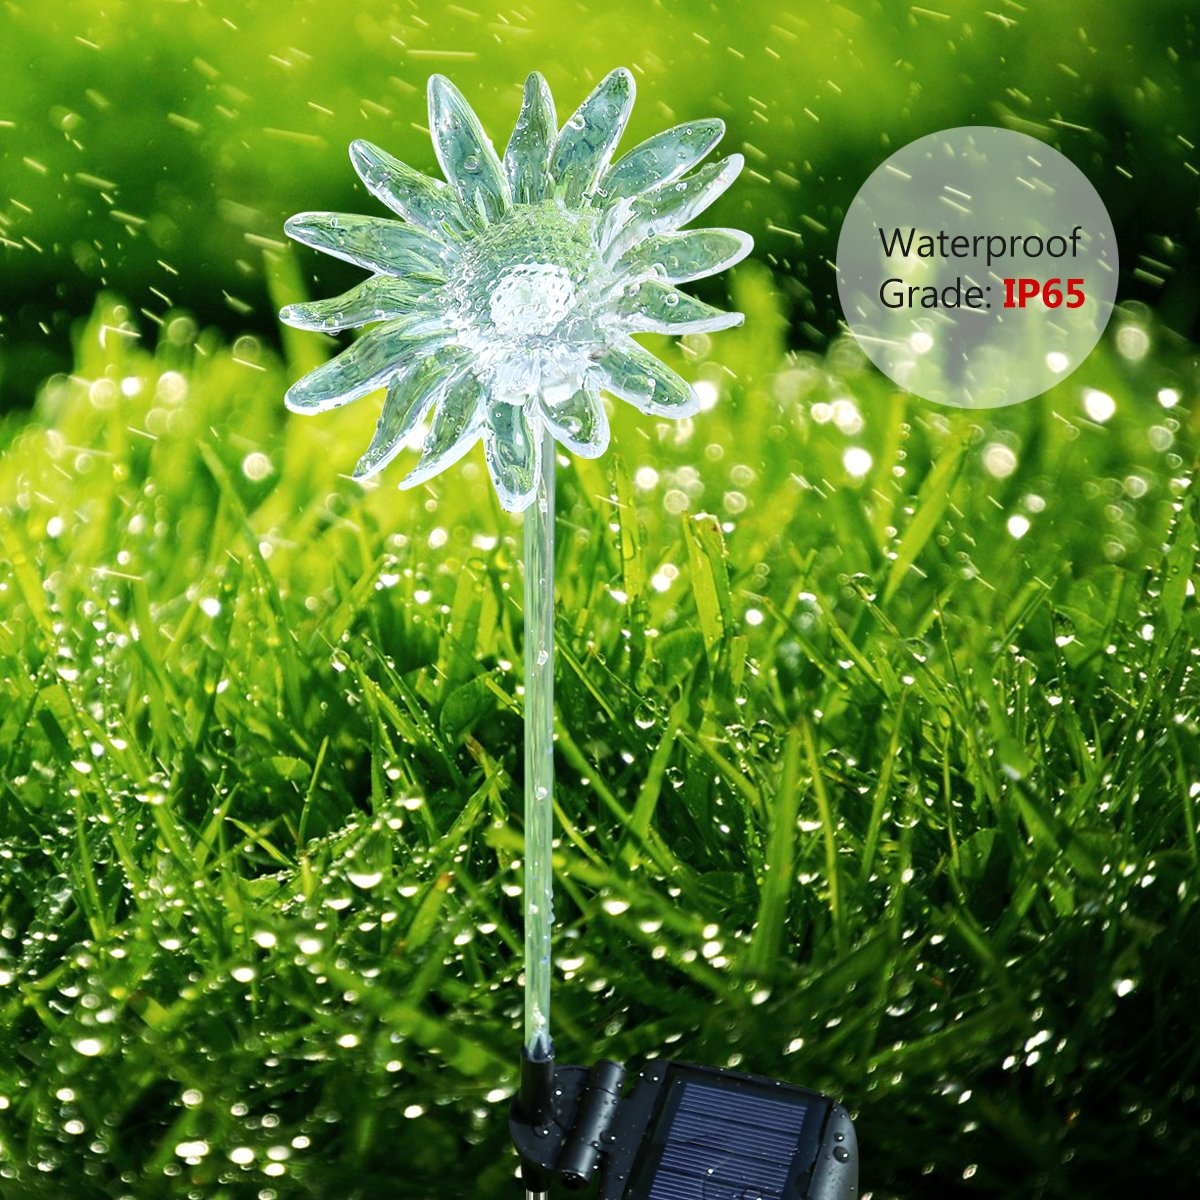 YUNLIGHTS 4pcs Solar Garden Lights Outdoor Garden Stake Lights Multi-Color Changing LED Solar Lights with Purple LED Light Stake for Garden Patio Backyard Decoration (Lotus,Dandelion,Lily,Sunflower) by YUNLIGHTS (Image #6)